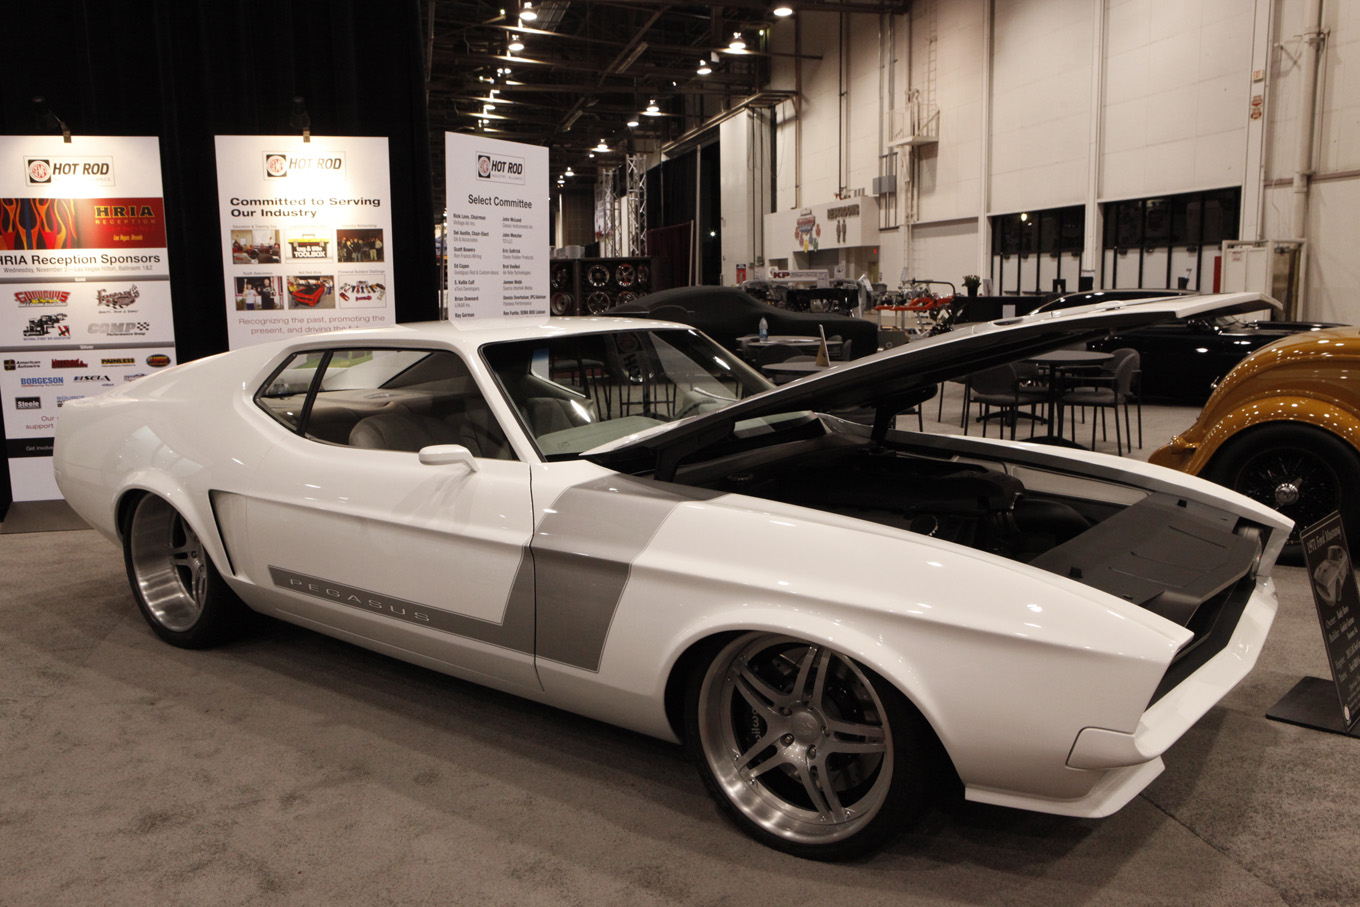 hot-rod-industry-alliance-1971-ford-mustang